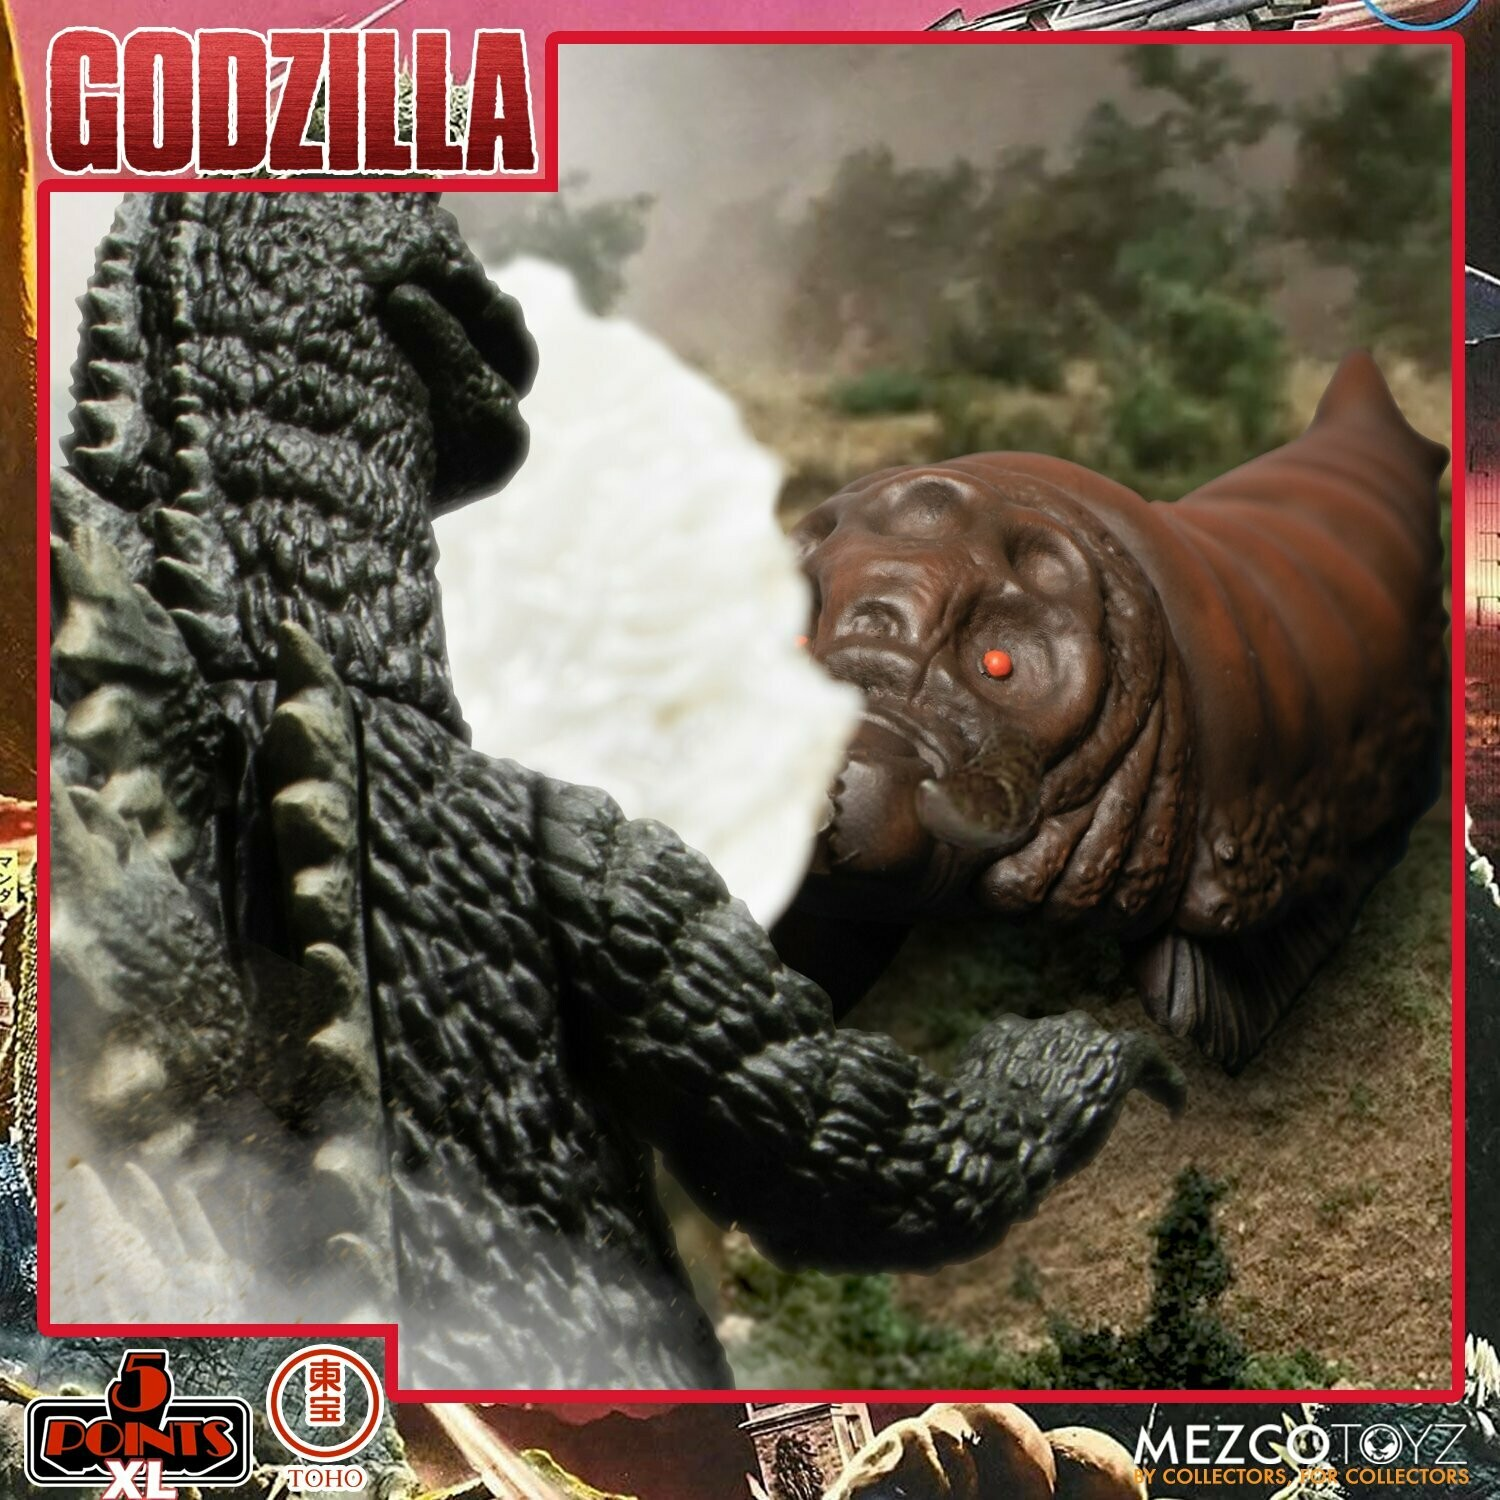 PRE-ORDER Mezco 5 Points XL Godzilla: Destroy All Monsters (1968) - Round 1 Boxed set